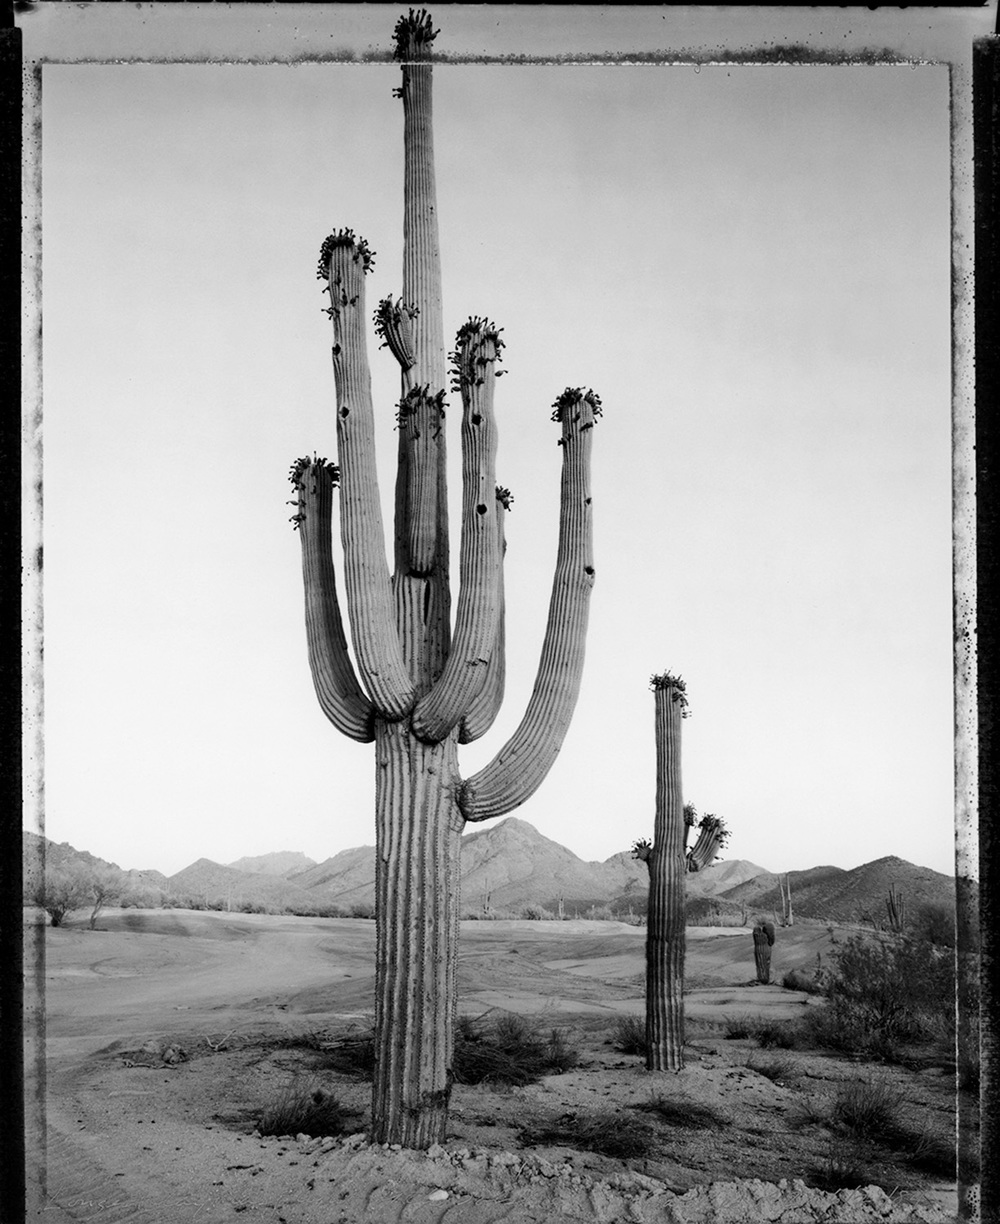 Longest day: first light of the solstice, Carefree, Arizona, 1984